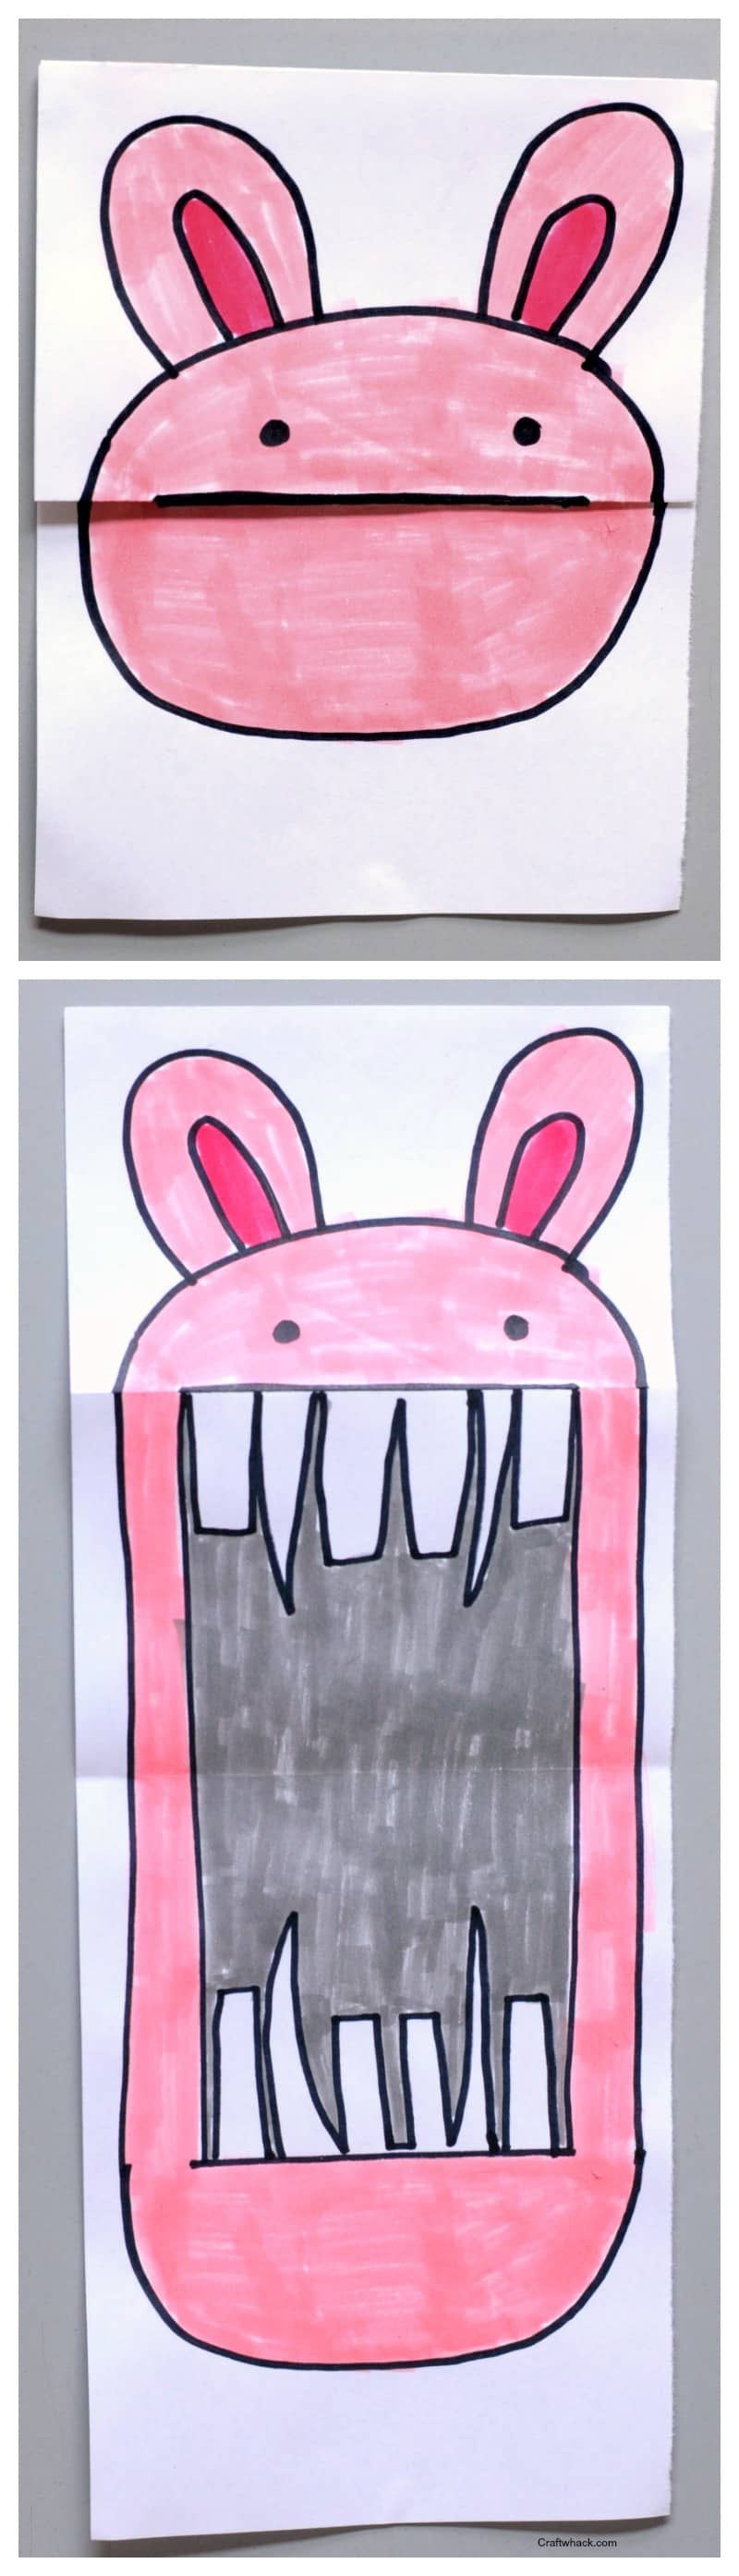 bunny-paper-project-1